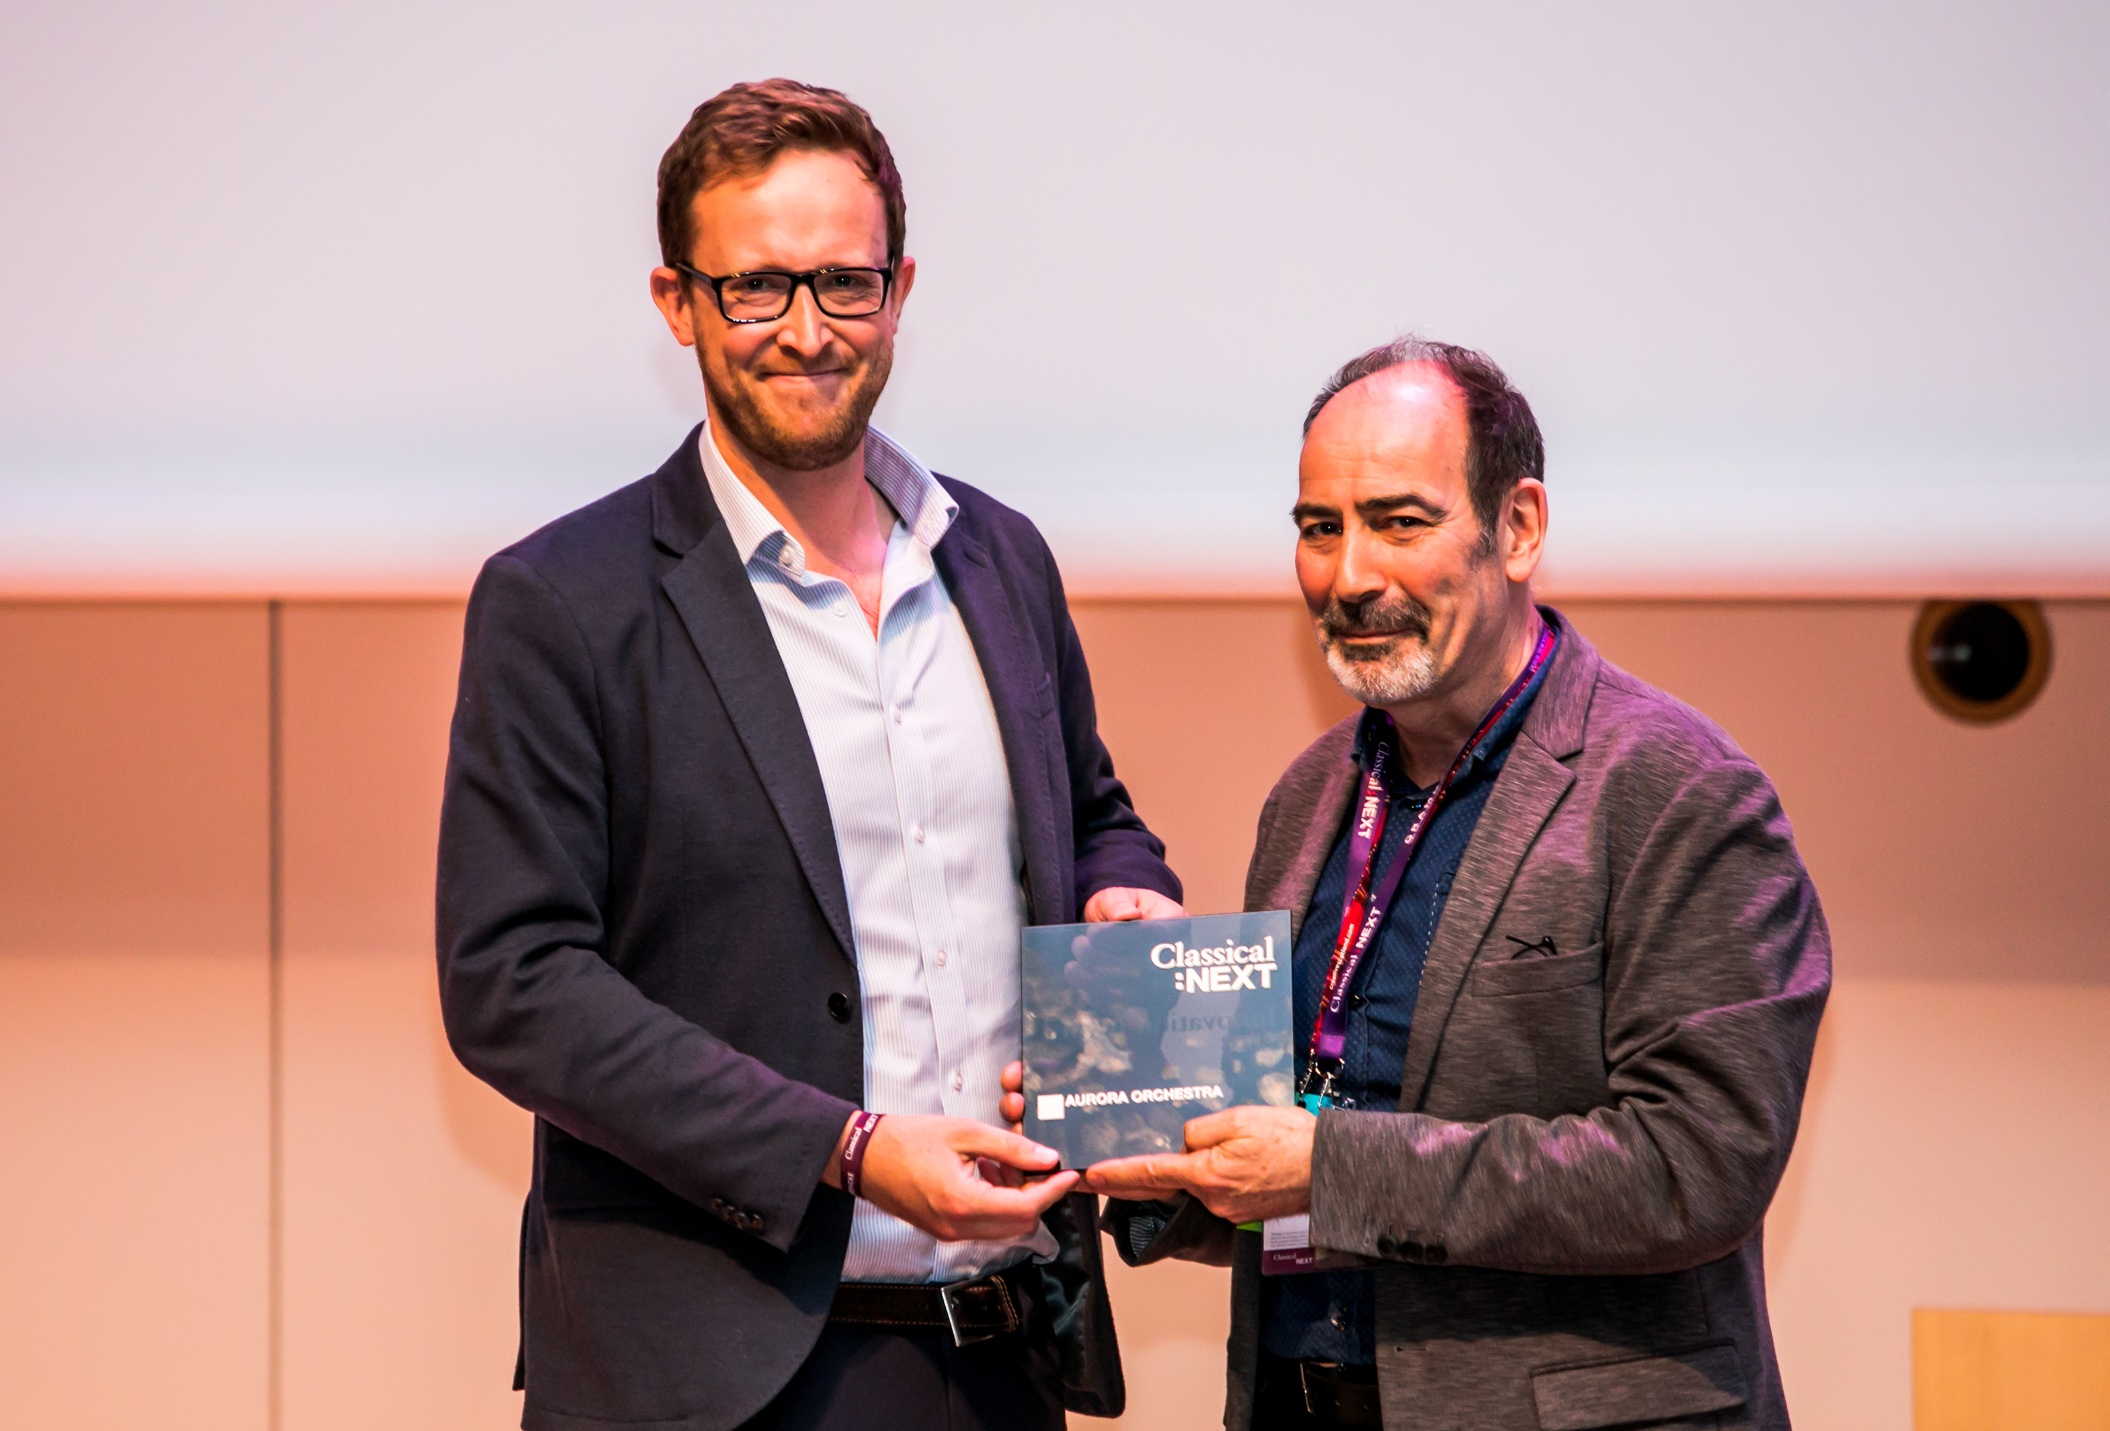 John Harte receives Classical Next Innovation Award from Neil Wallace at De Doelen, Rotterdam